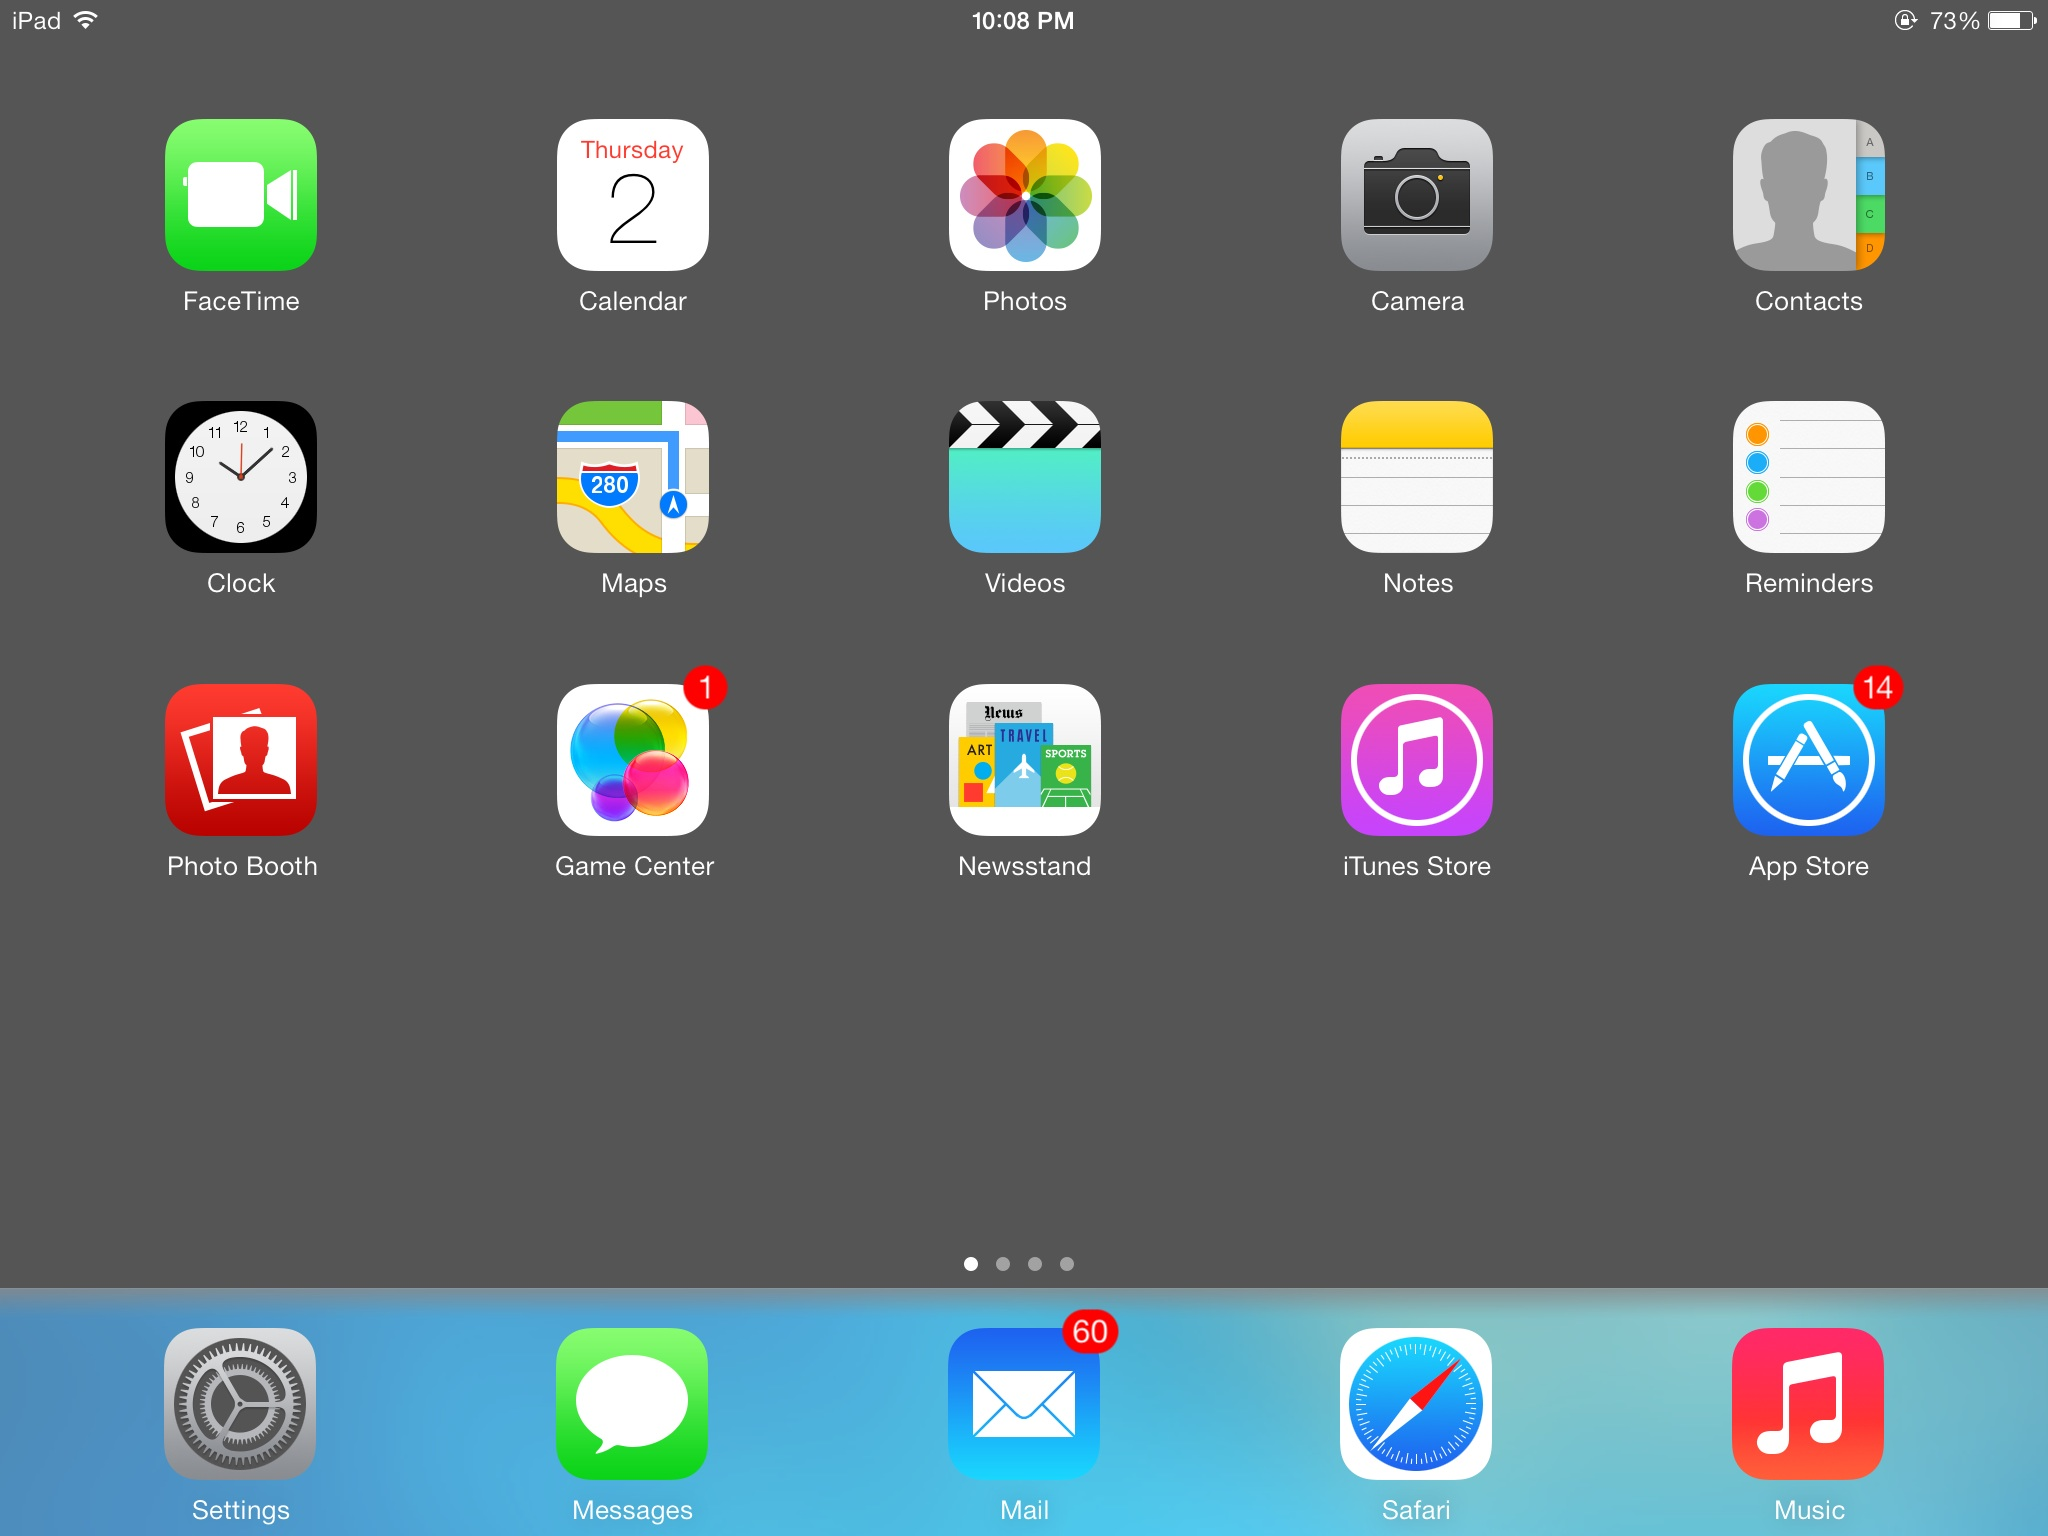 iPad gray background - iPhone, iPad, iPod Forums at iMore.com